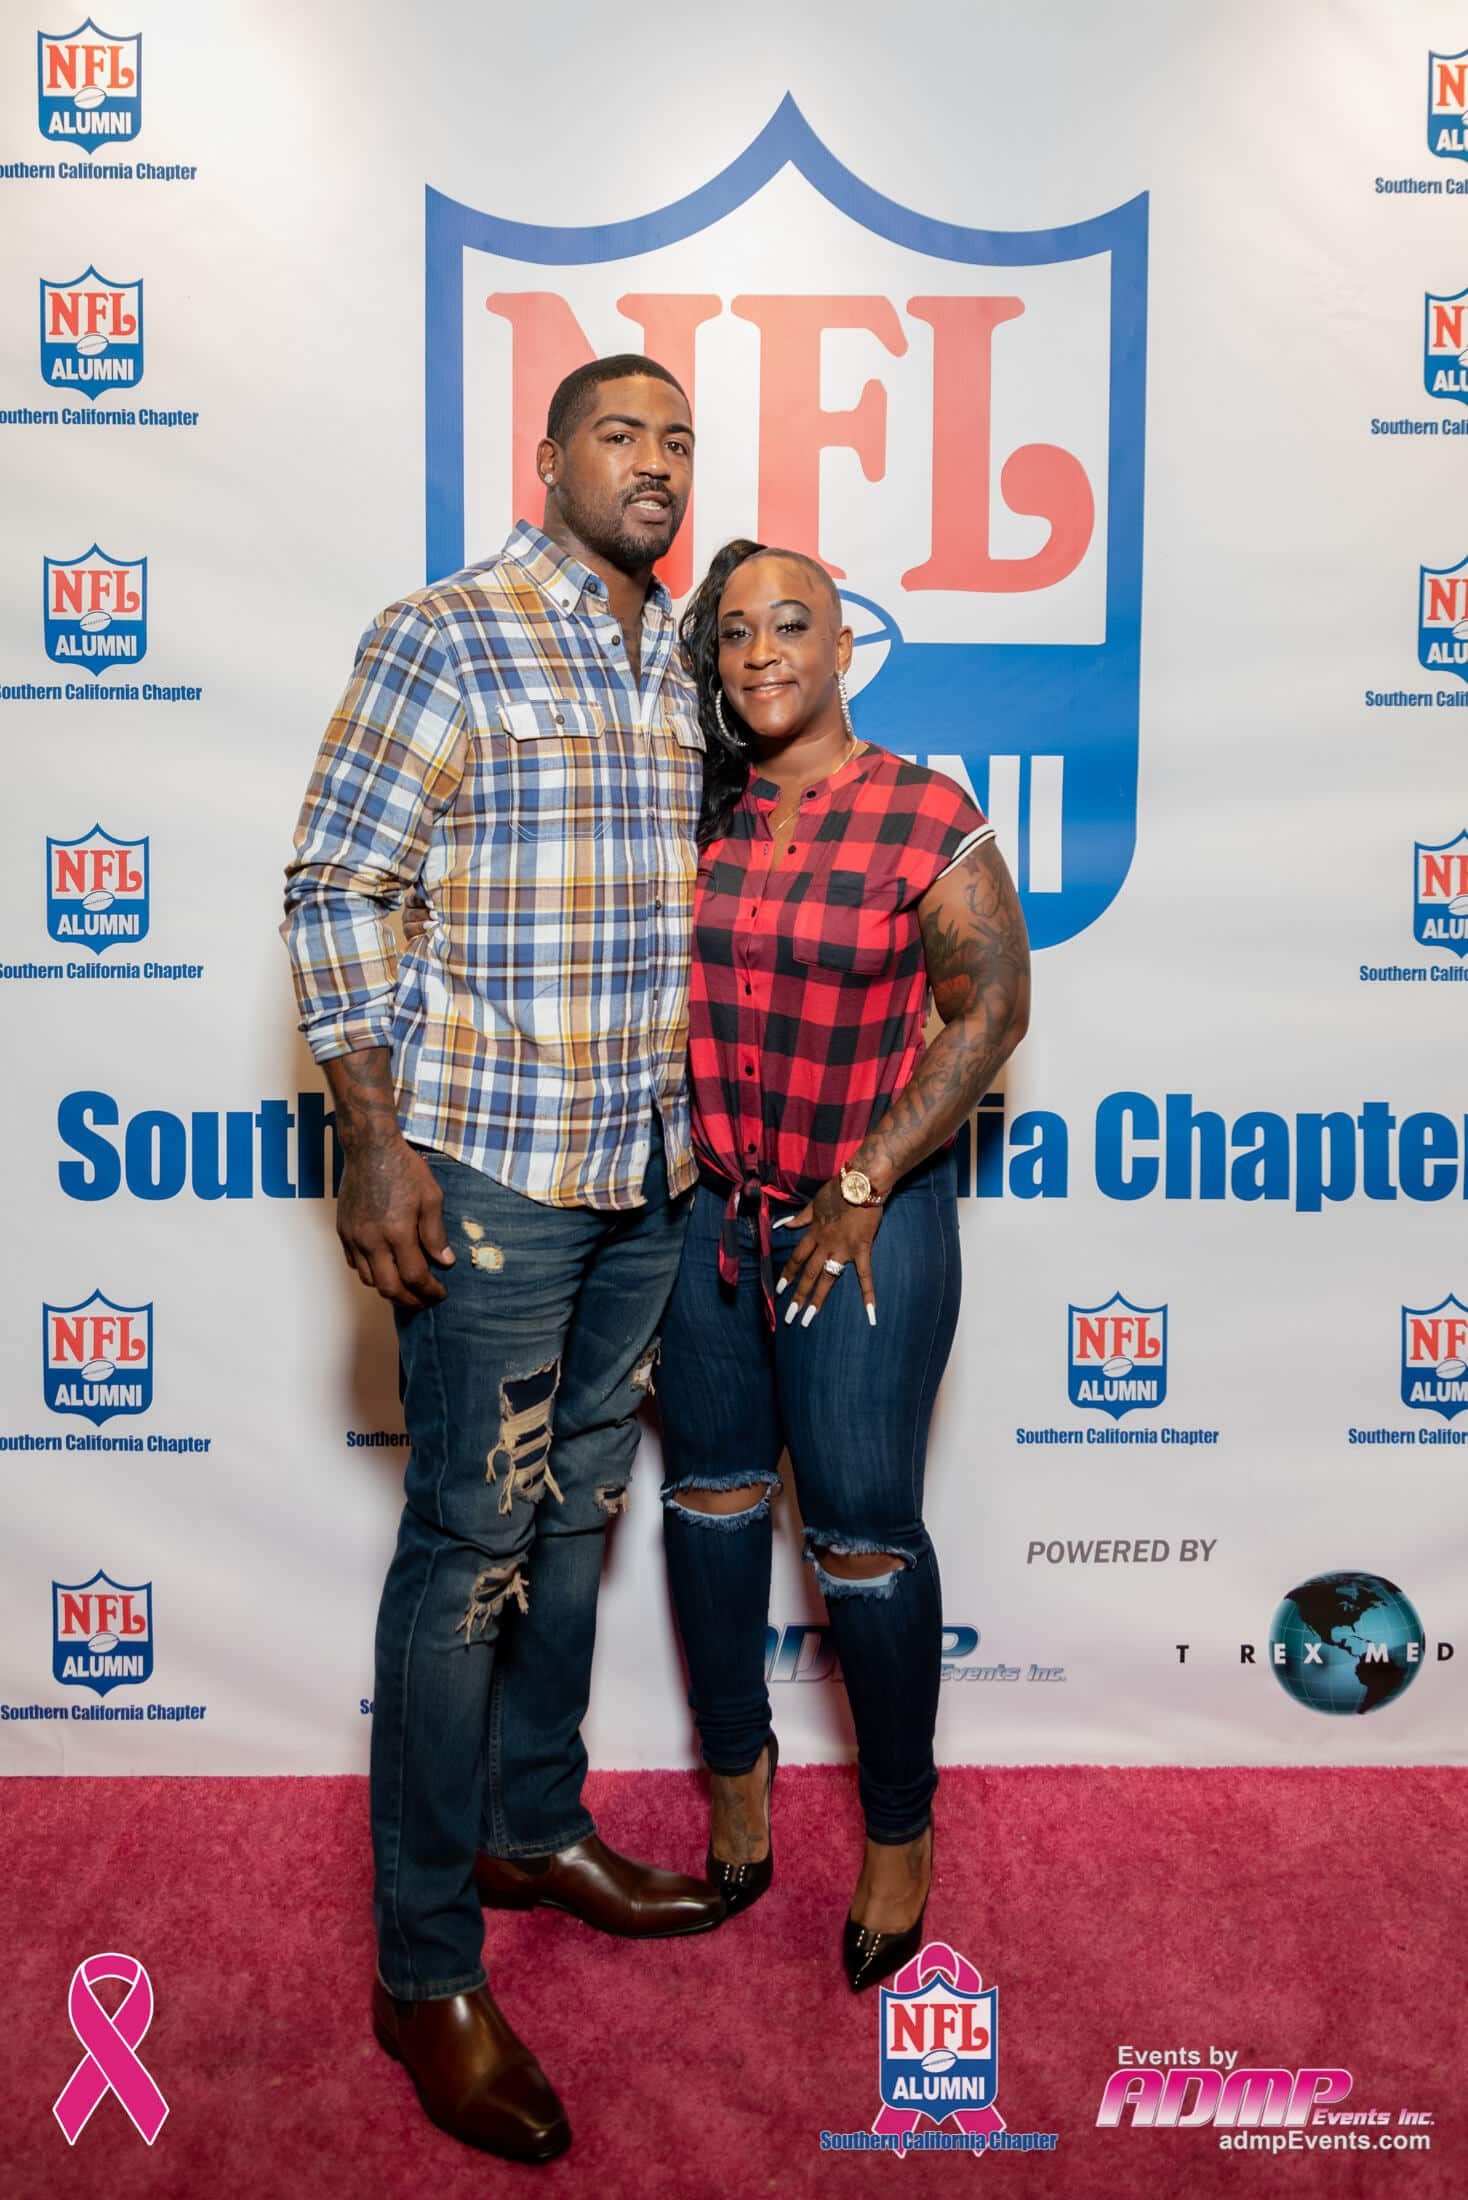 NFL Alumni SoCal Charity Event Series Breast Cancer Event 10-14-19-284